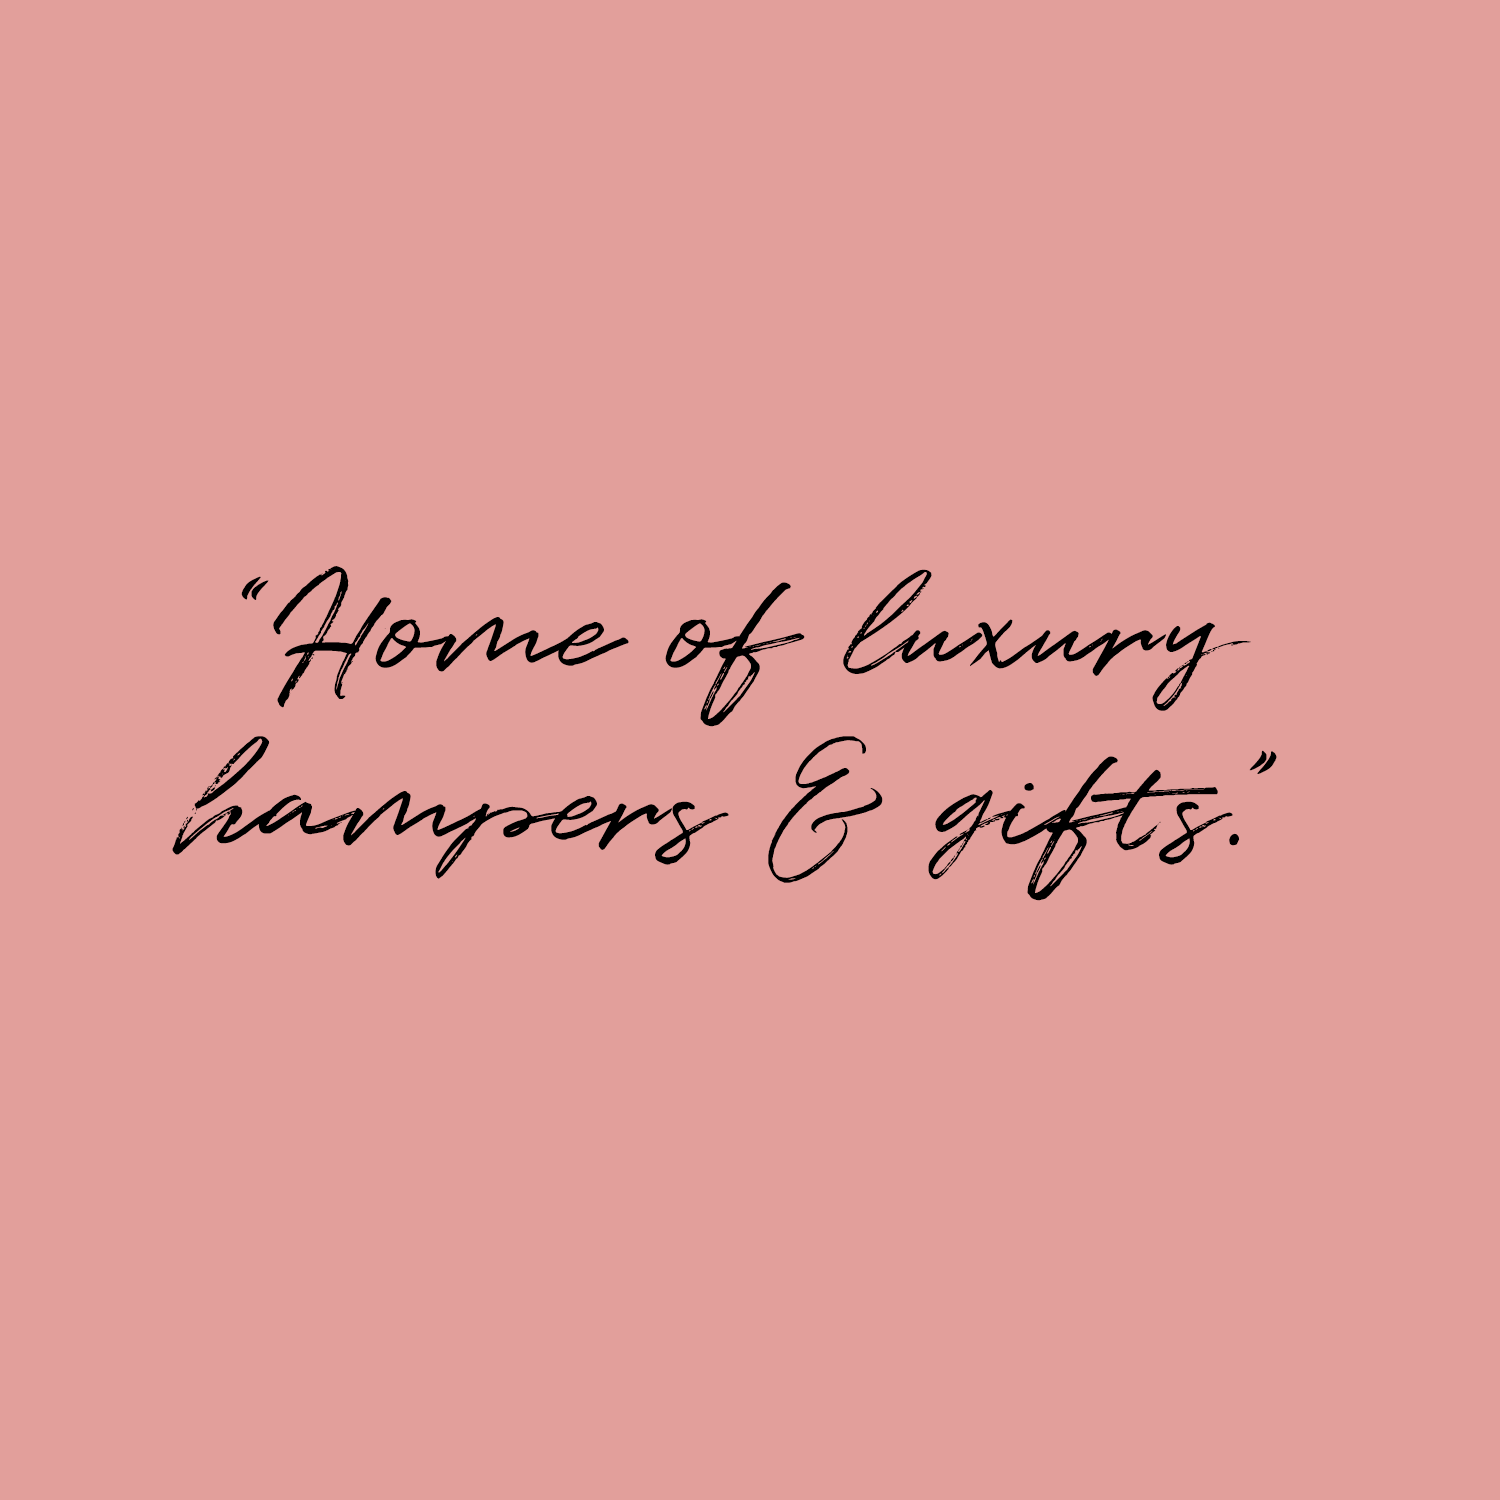 'Home of Luxury Hampers and Gifts' quote on blush pink background